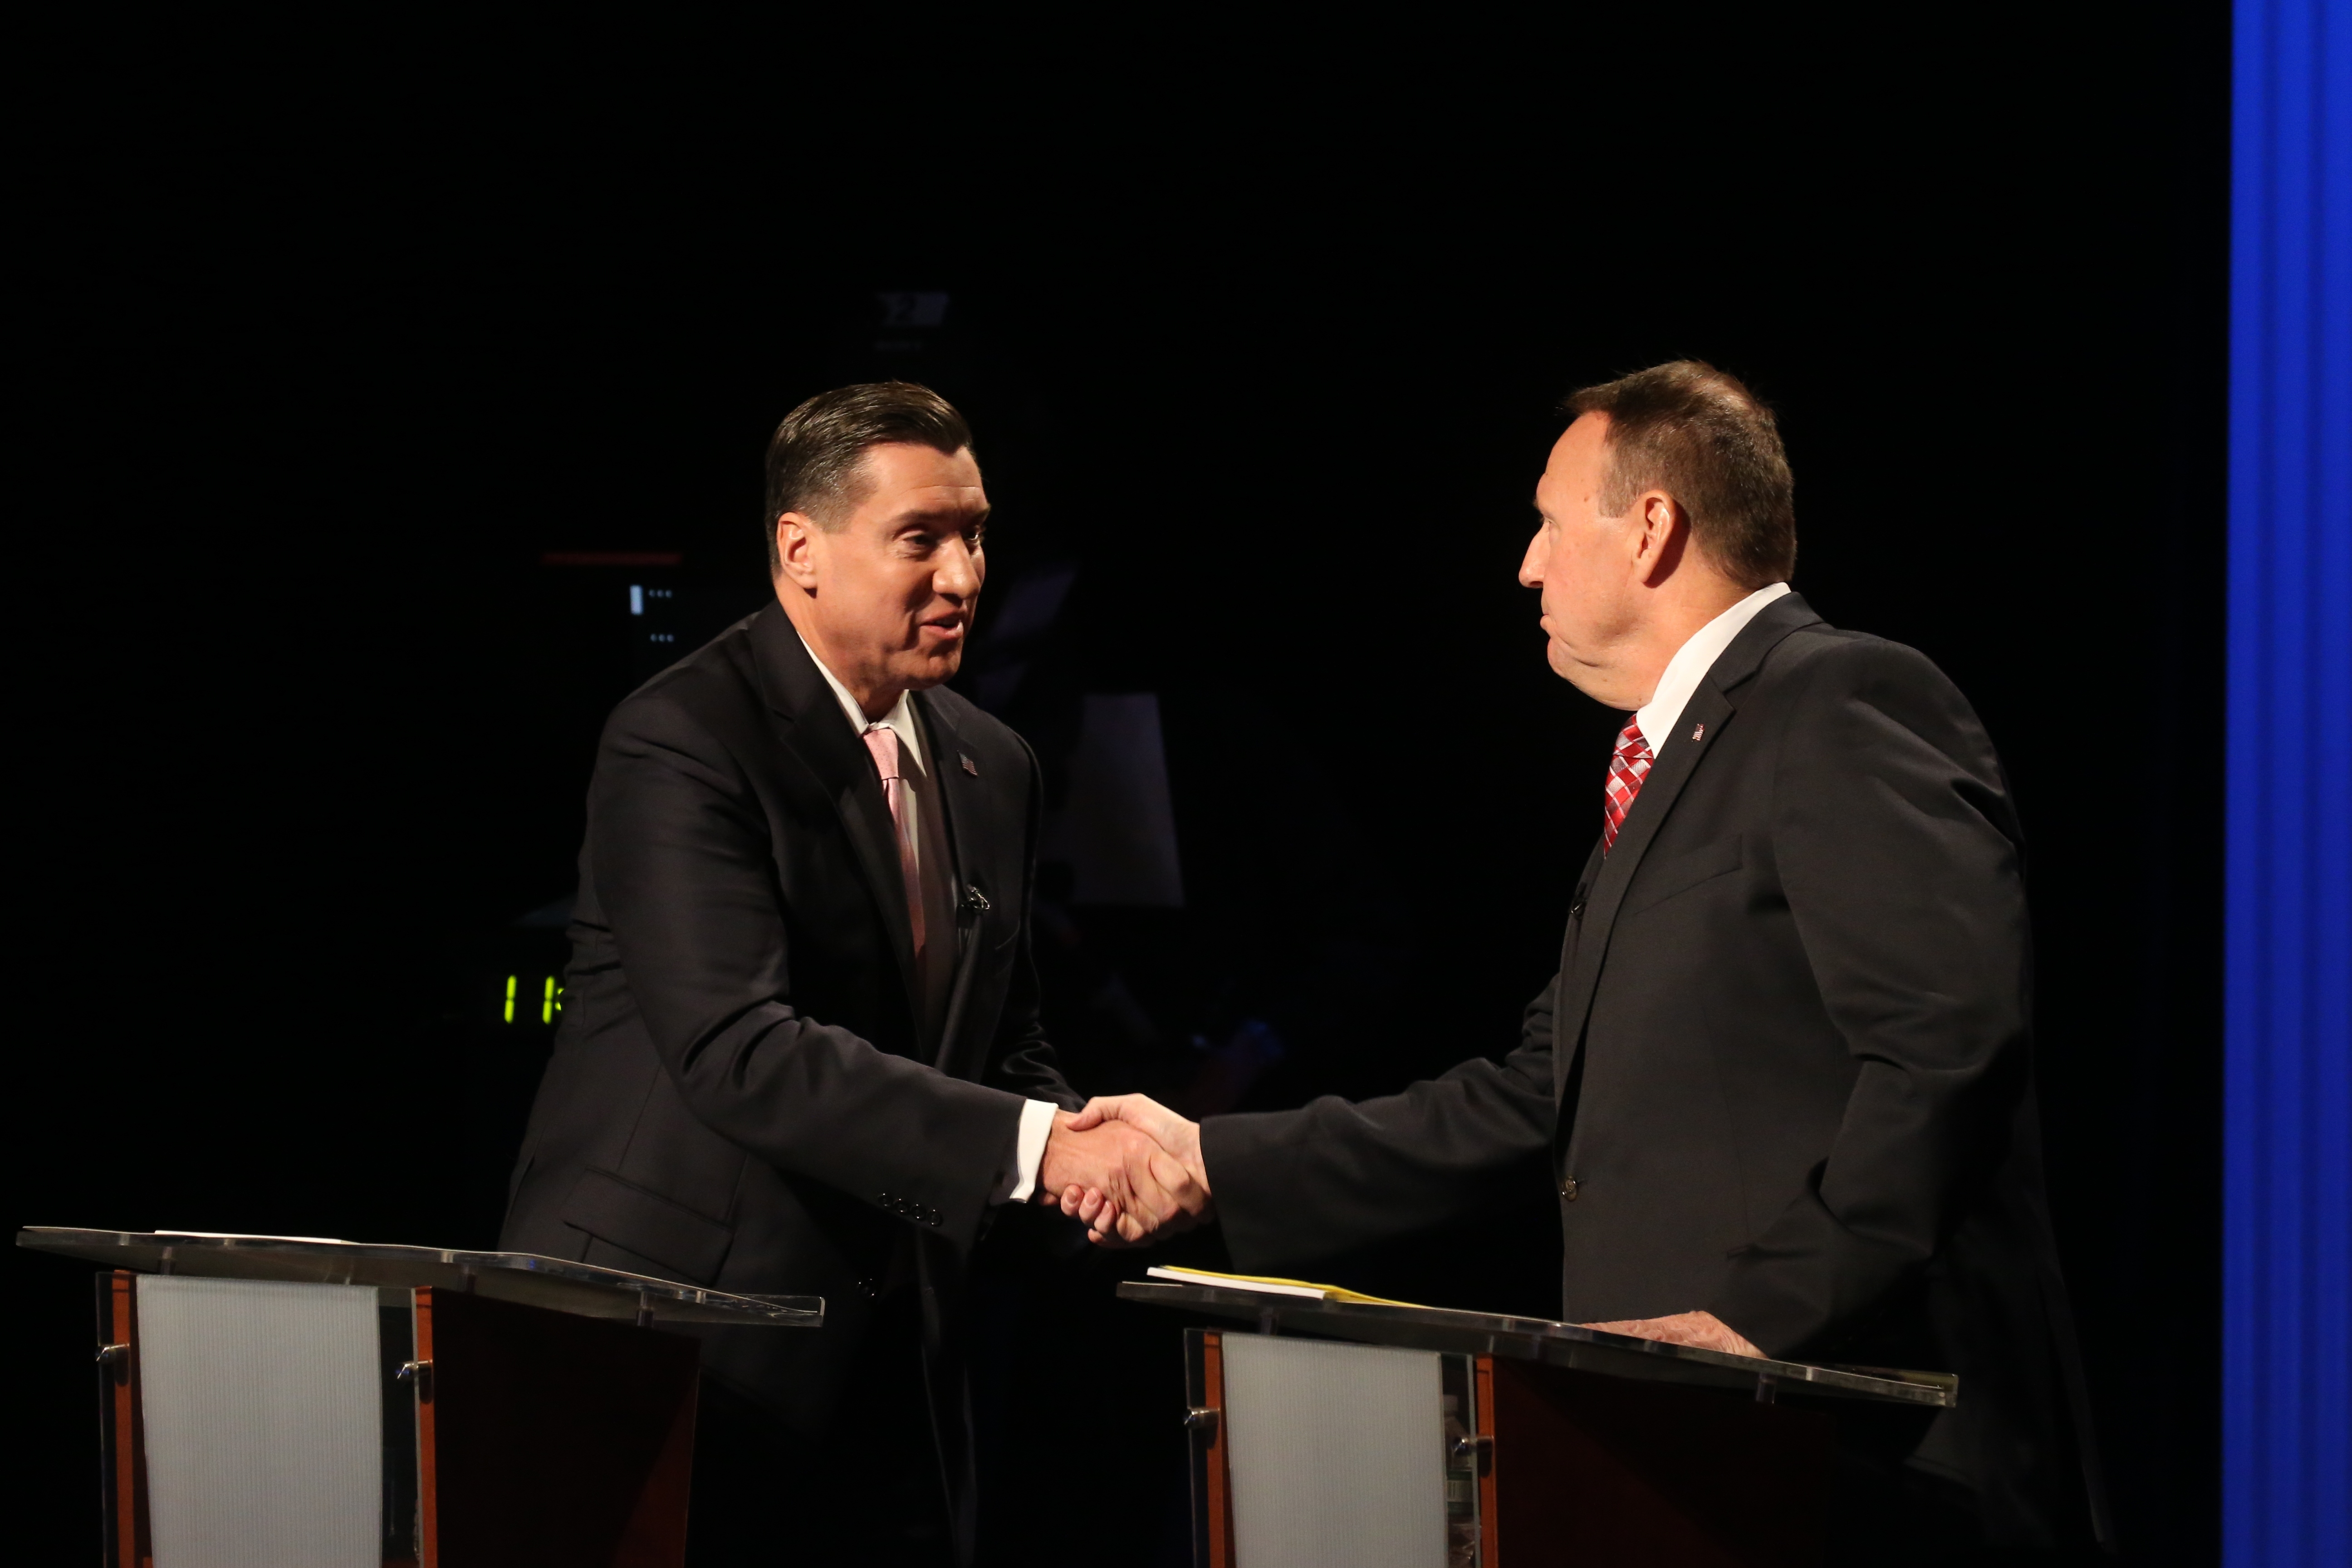 District attorney candidates John Flynn, left, and Joseph Treanor III shake hands after a debate between the two at WNED Studios on Oct. 27, 2016. (John Hickey/Buffalo News)